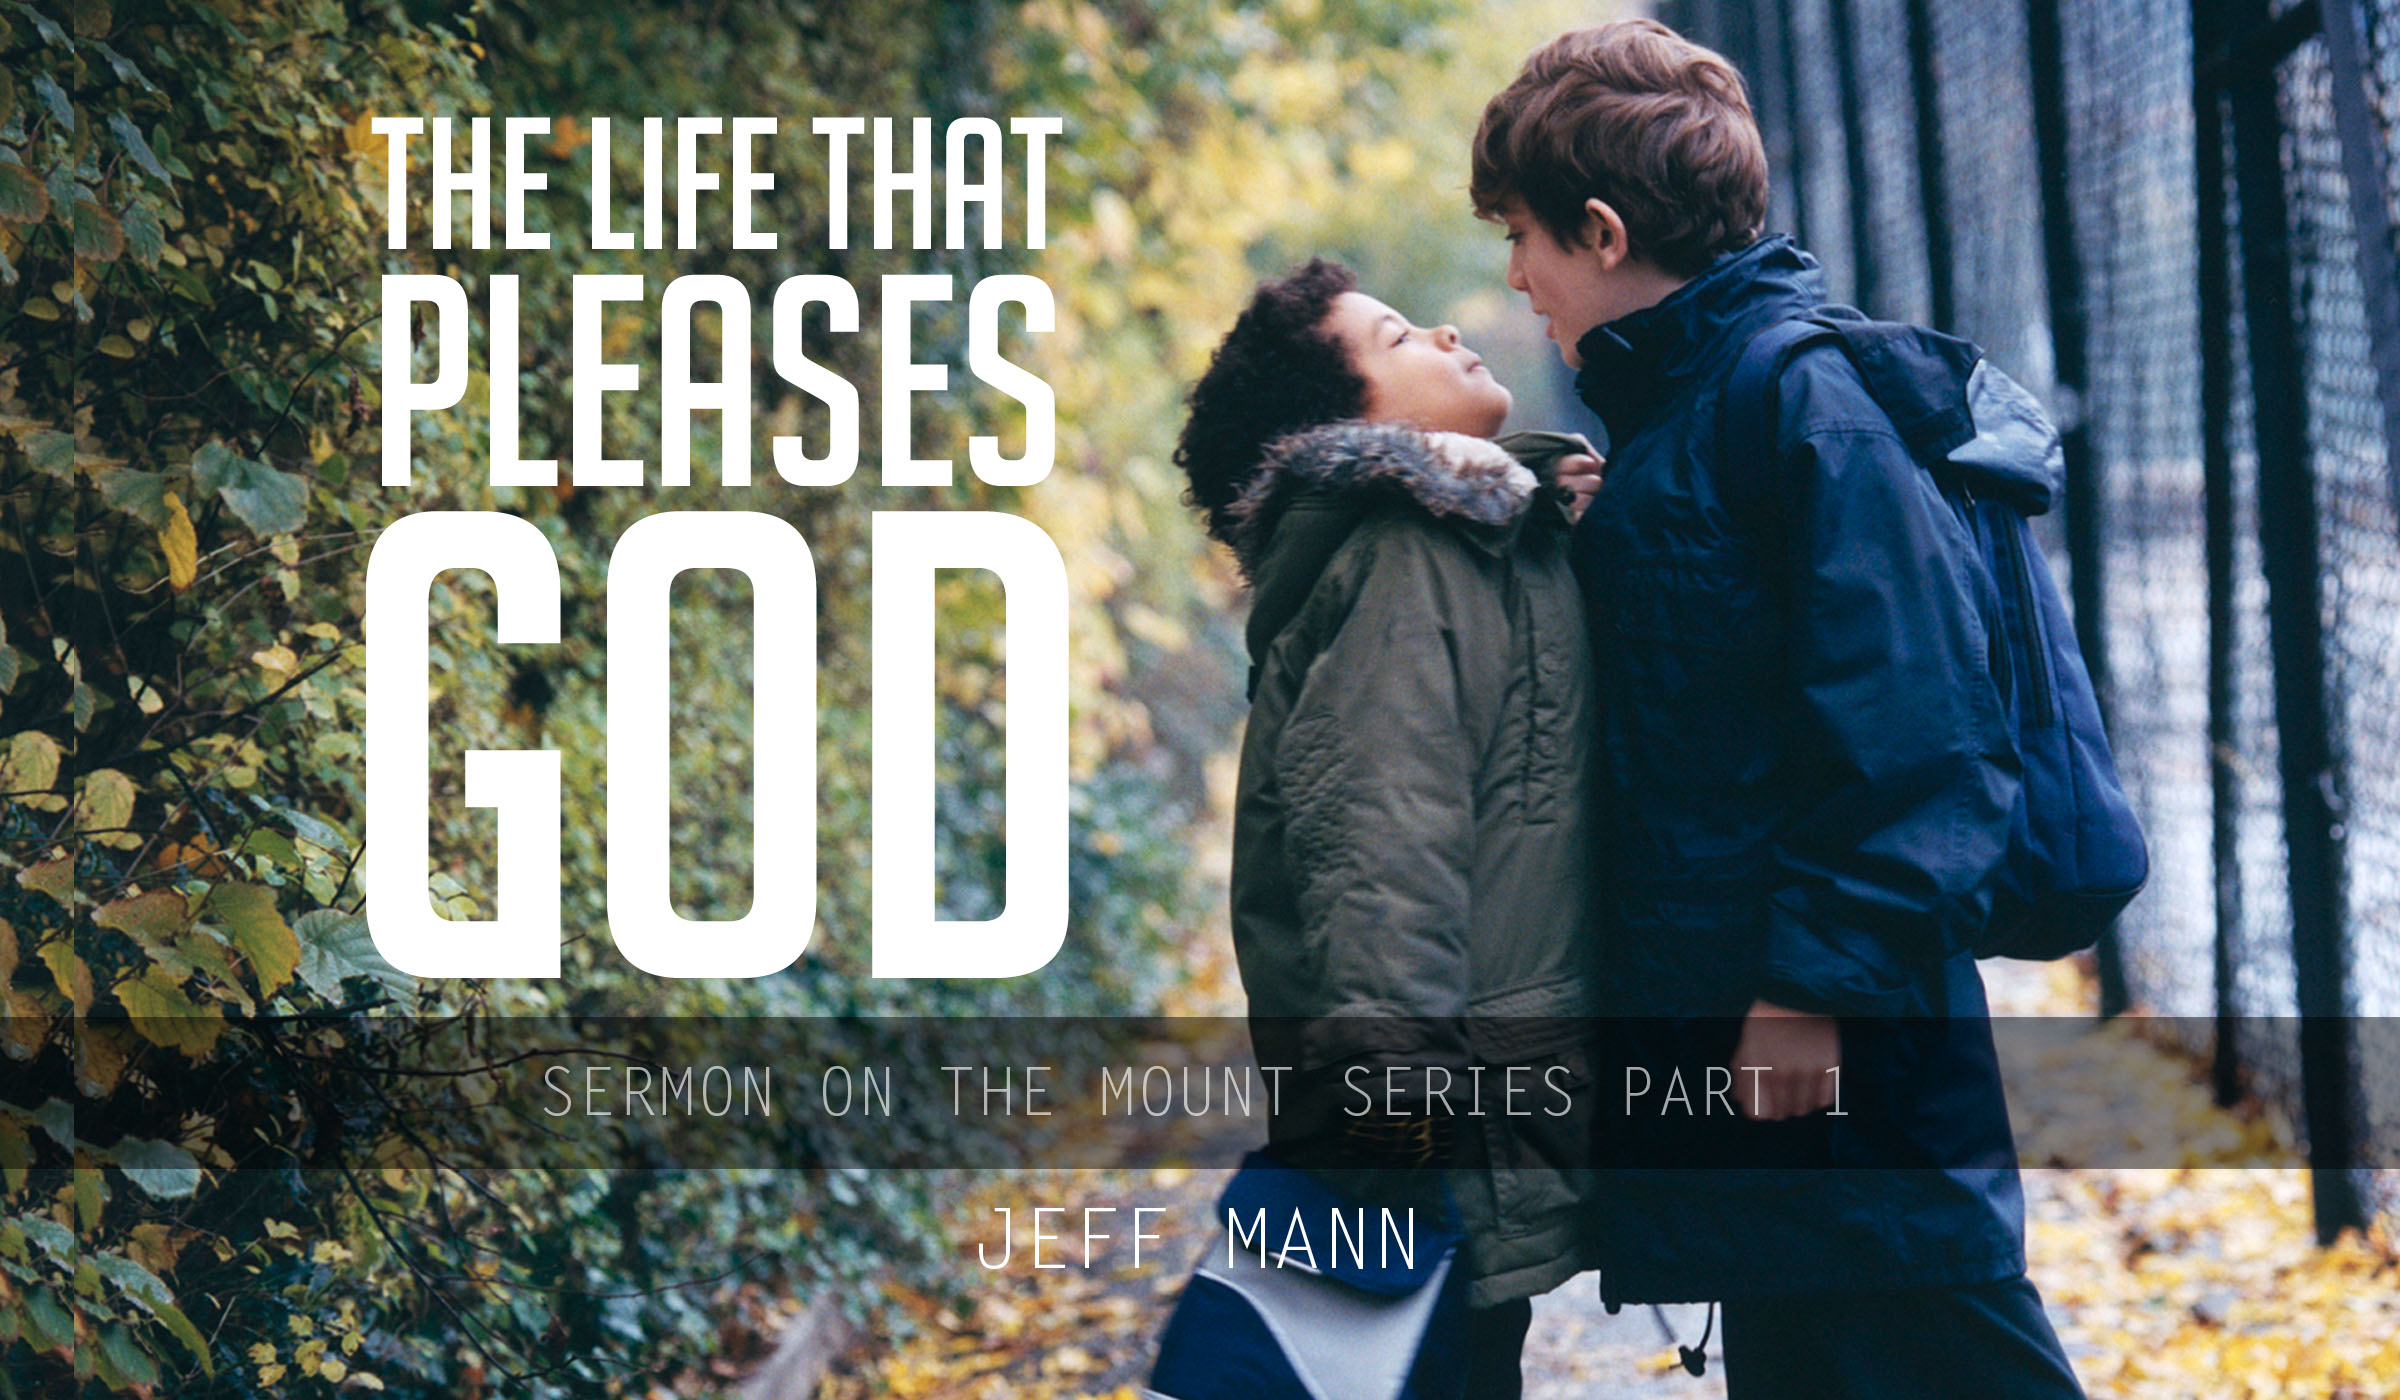 The Life that Pleases God – Sermon on the Mount series Part 1 – Jeff Mann